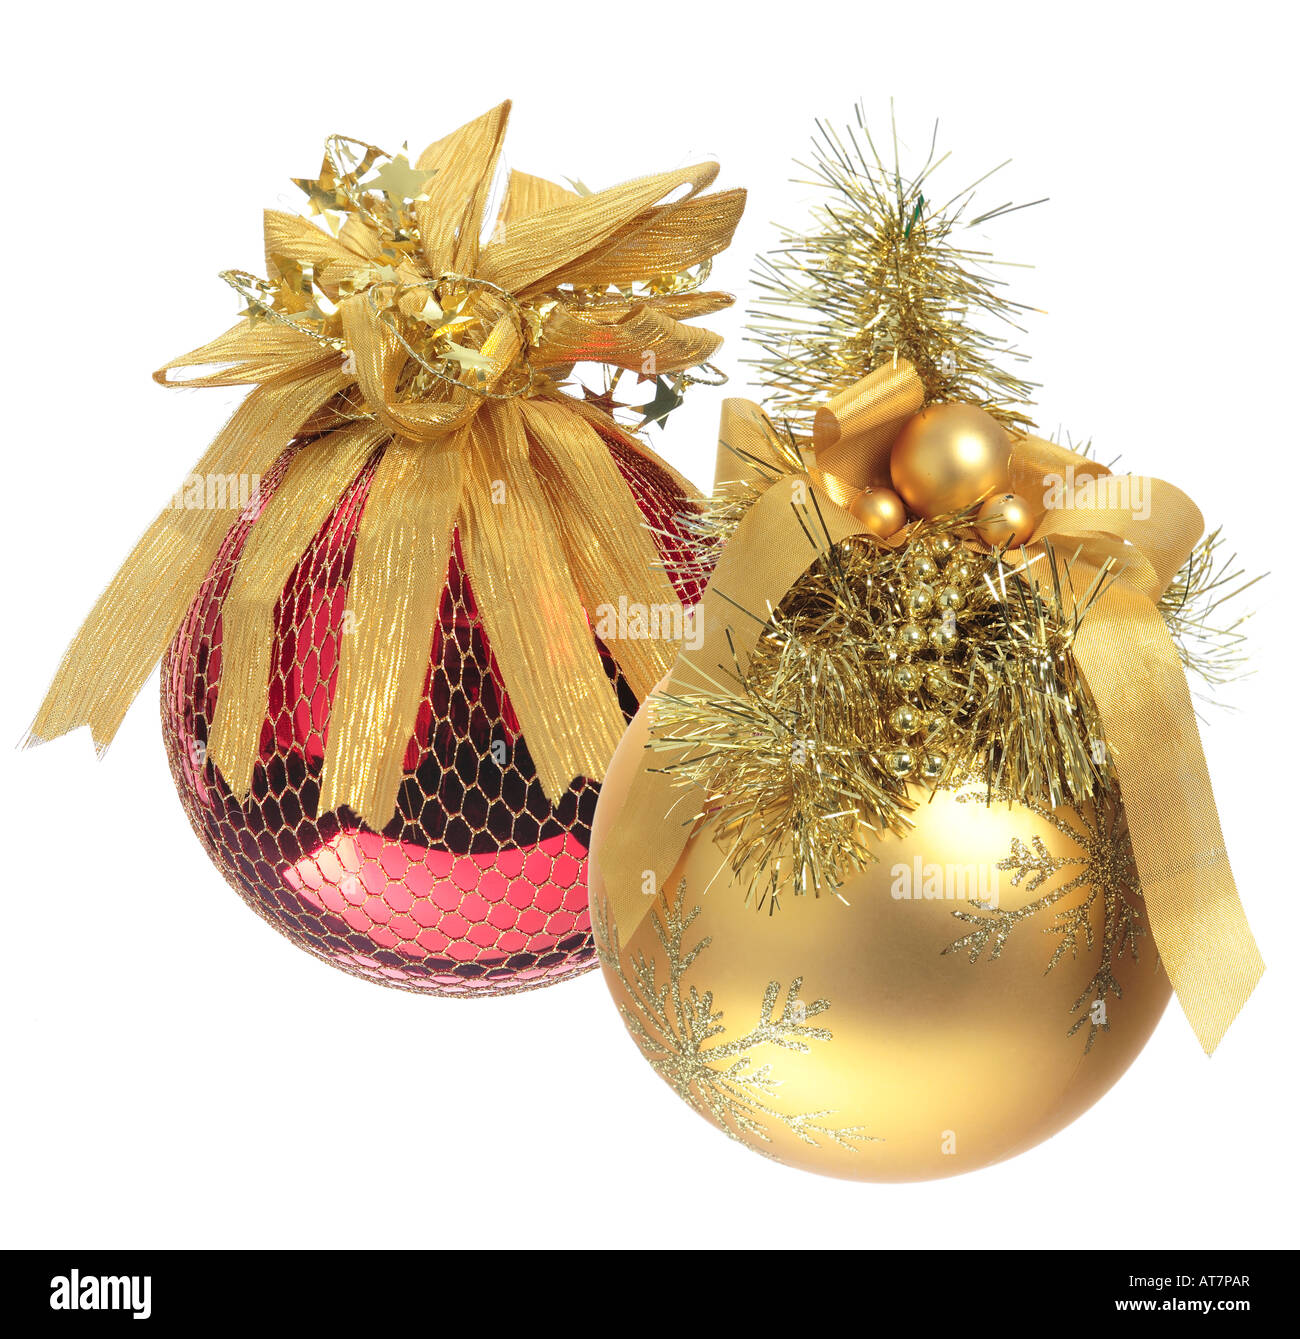 Baubles - Red and Gold Christmas Decorations. - Stock Image